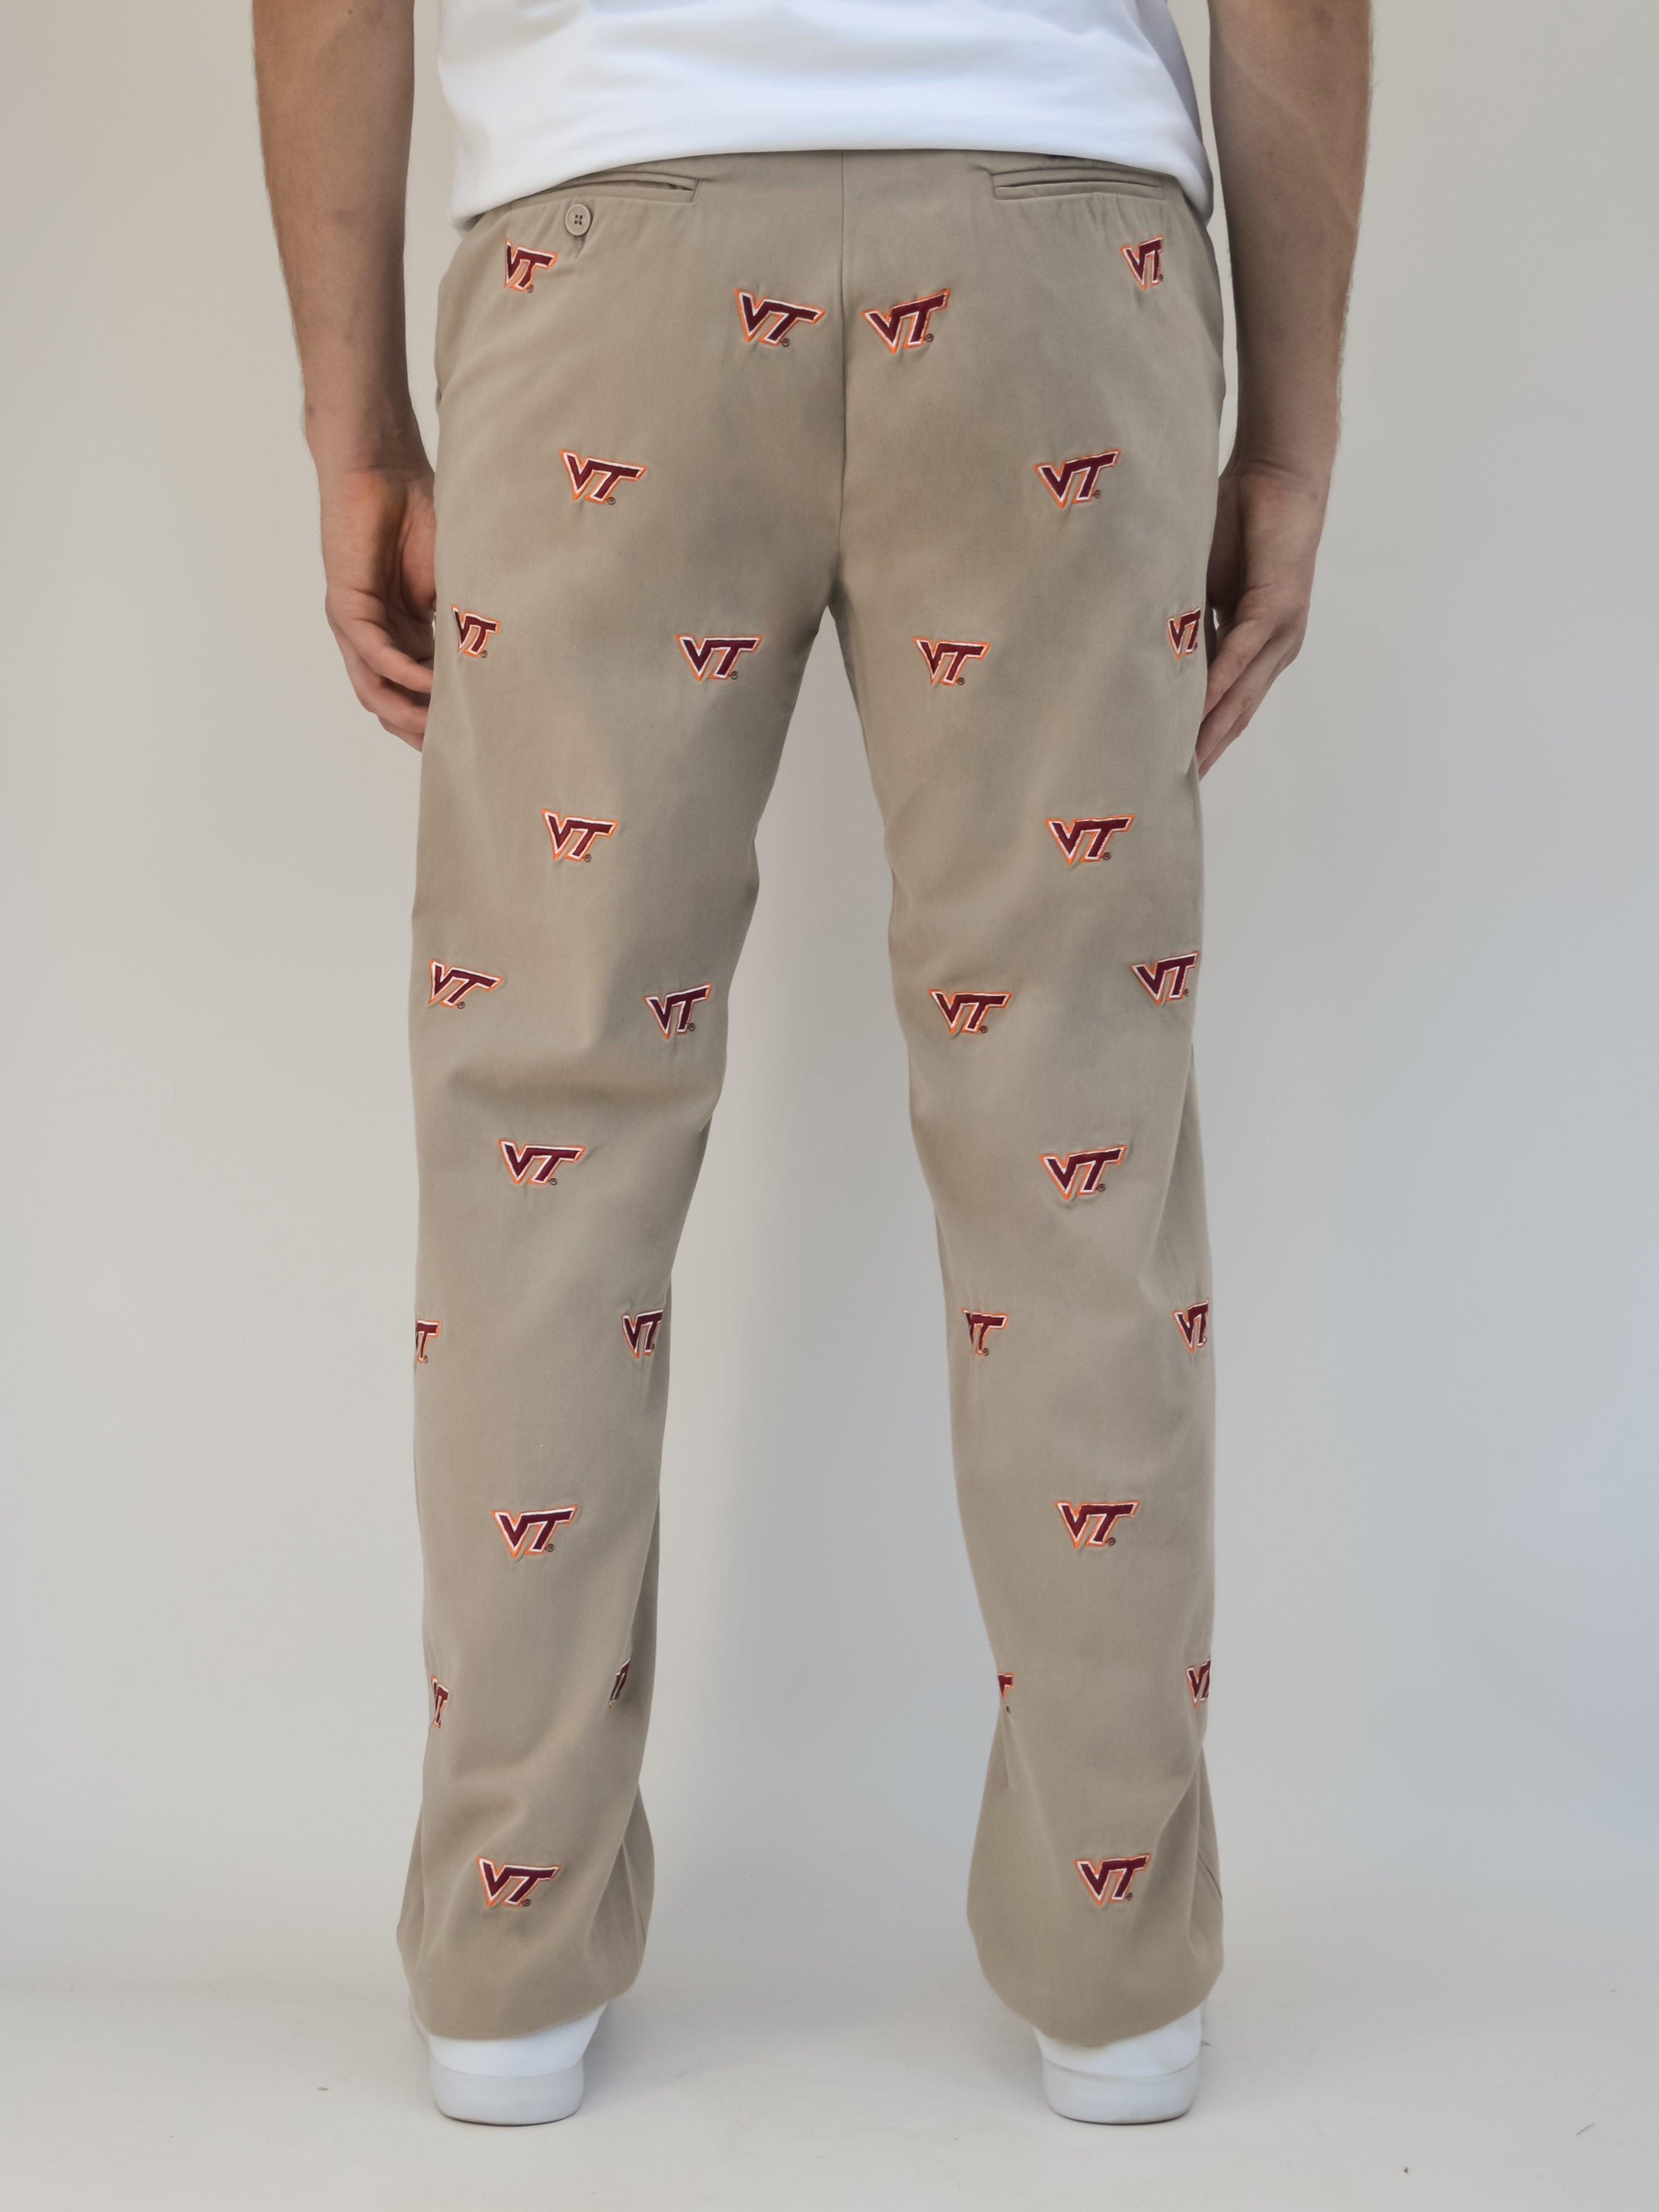 Virginia Tech Khaki Pants